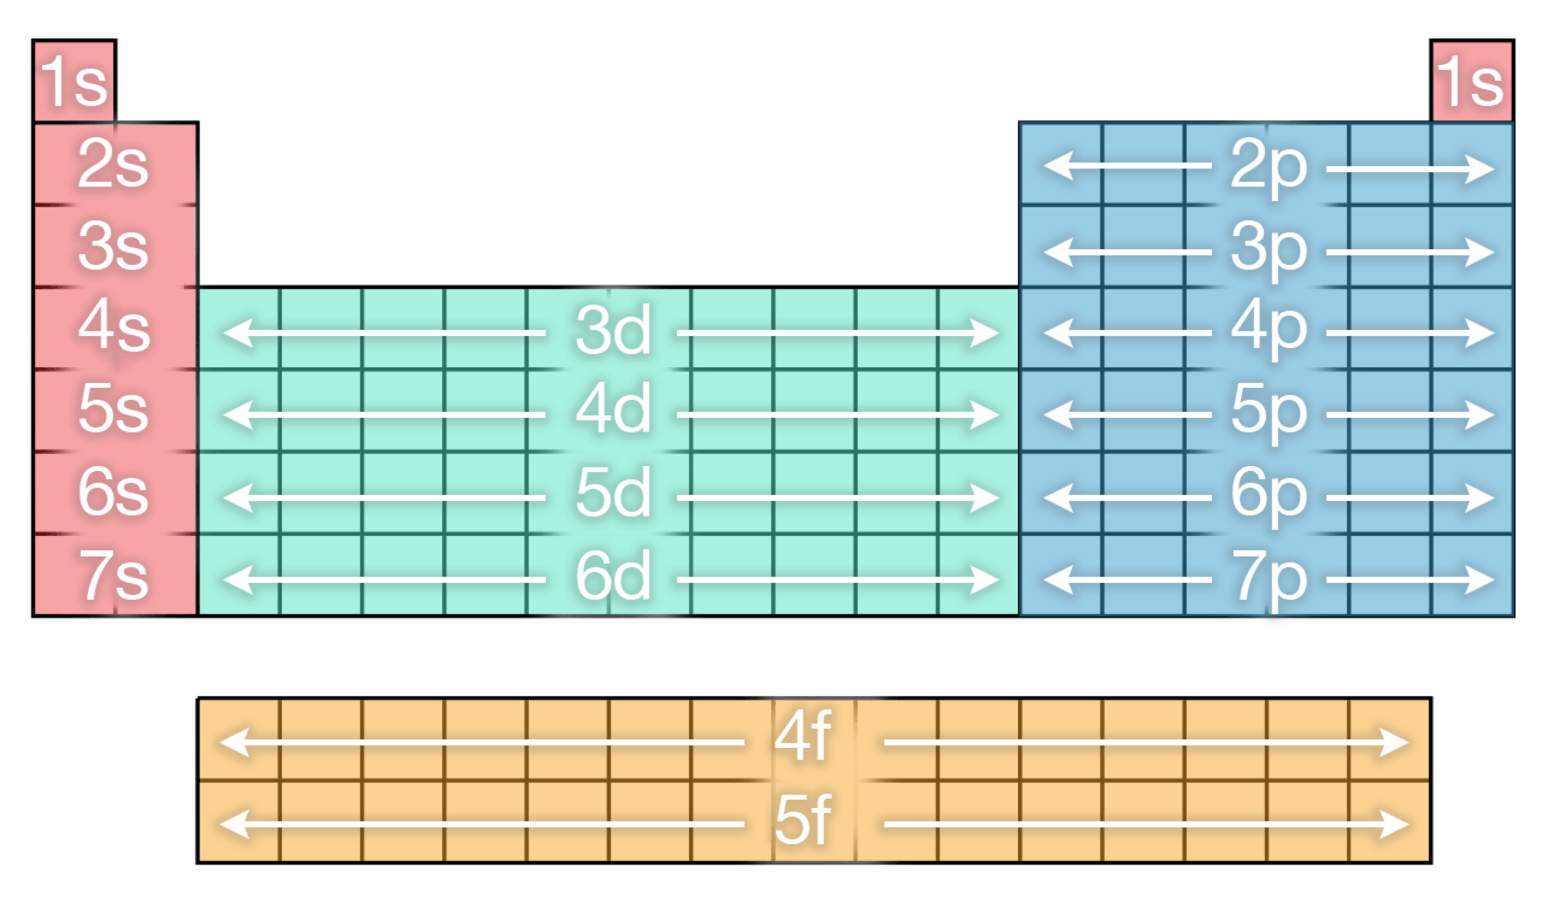 diagram of modern periodic table mercruiser alpha one parts the from its classic design to use in popular culture conversation cc by sa there is an interactive